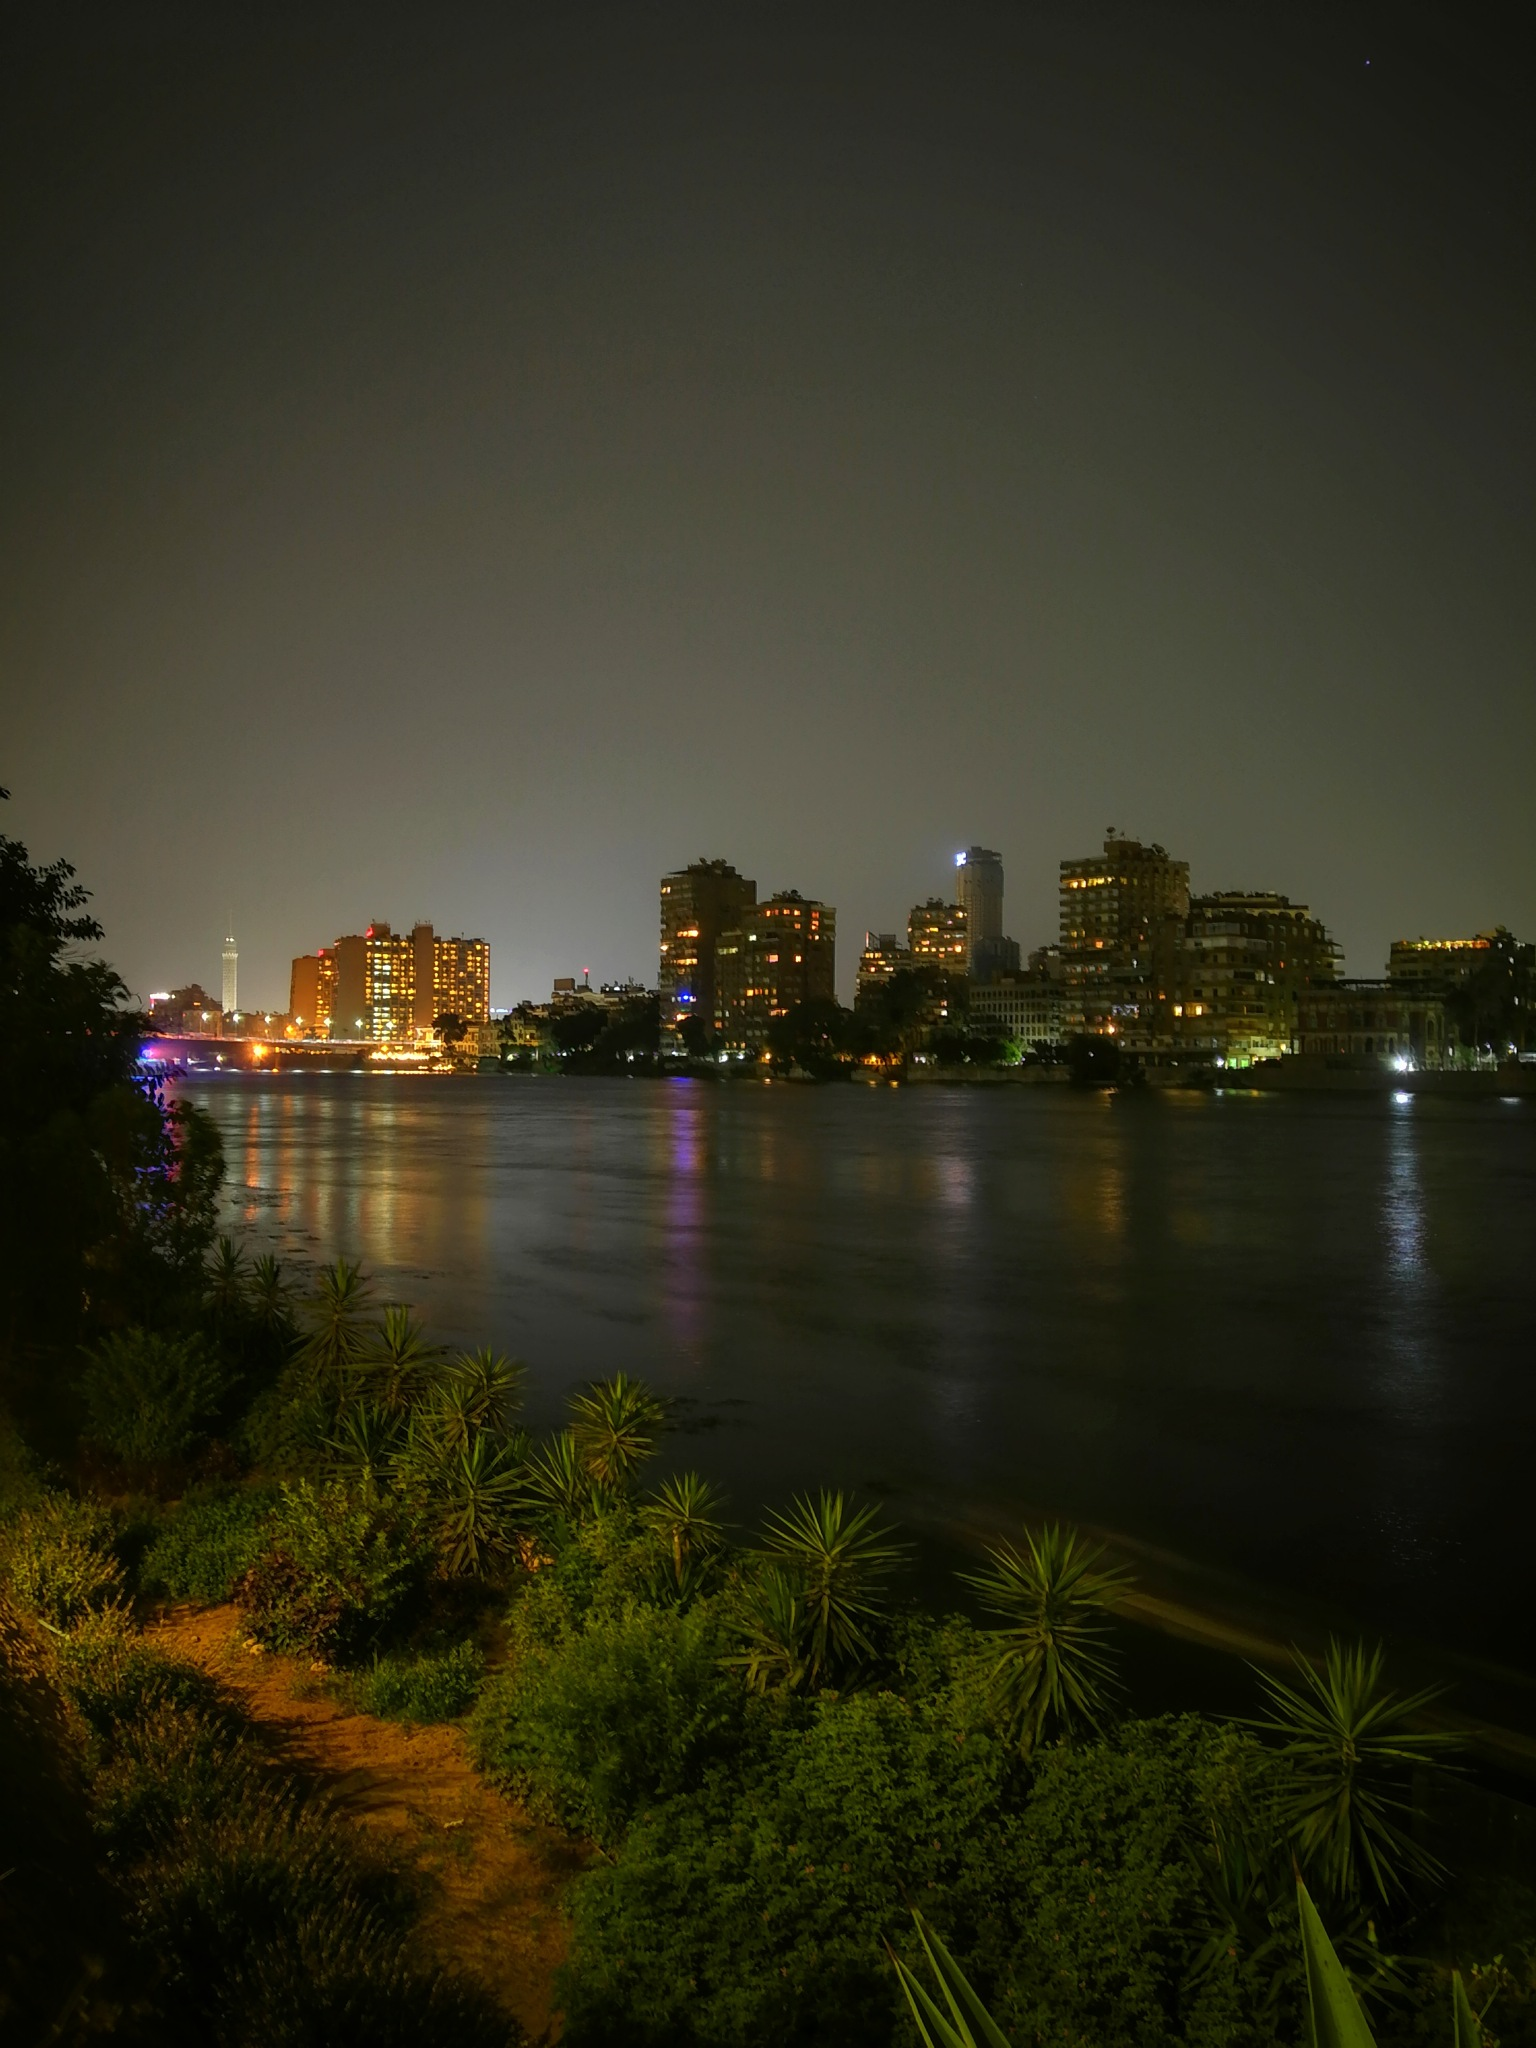 The nile river by Ahmed Hamdi